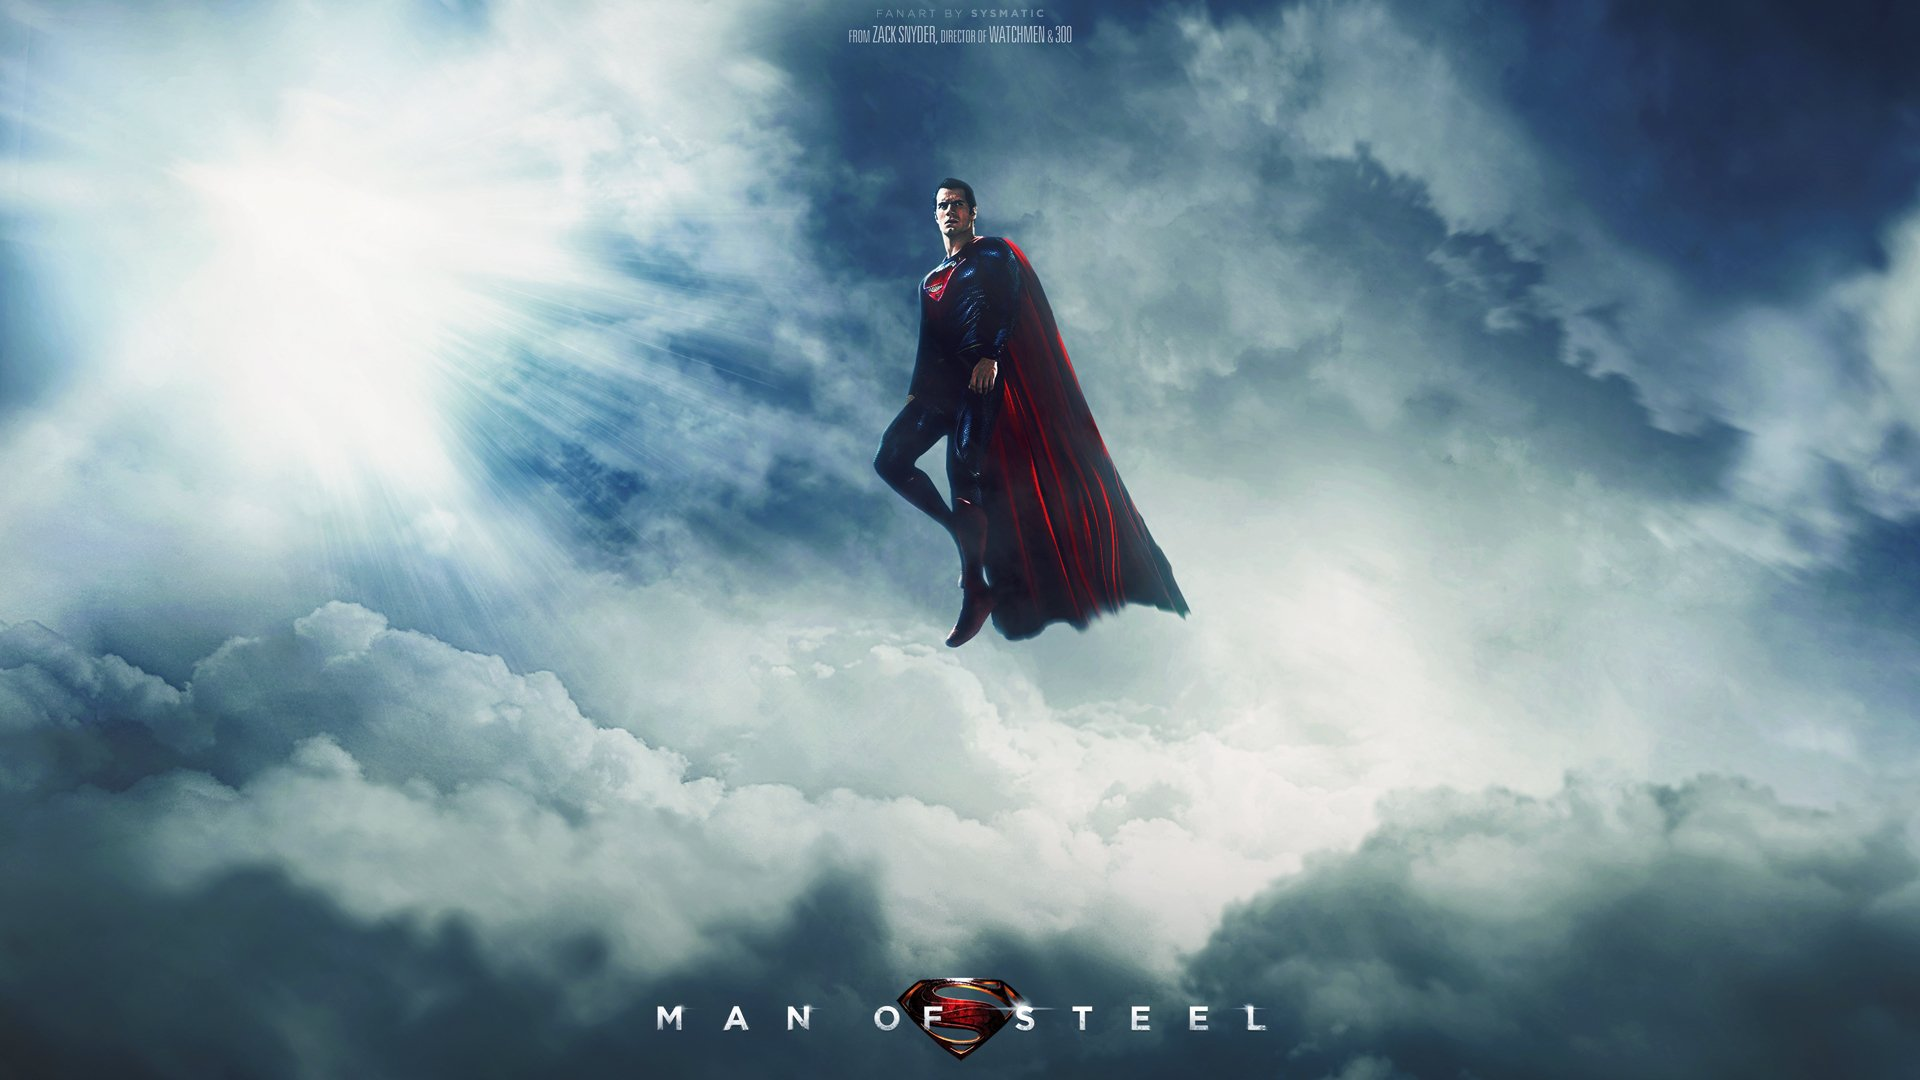 Superman Hd Wallpaper For Iphone 5 Man Of Steel Full Hd Wallpaper And Background Image